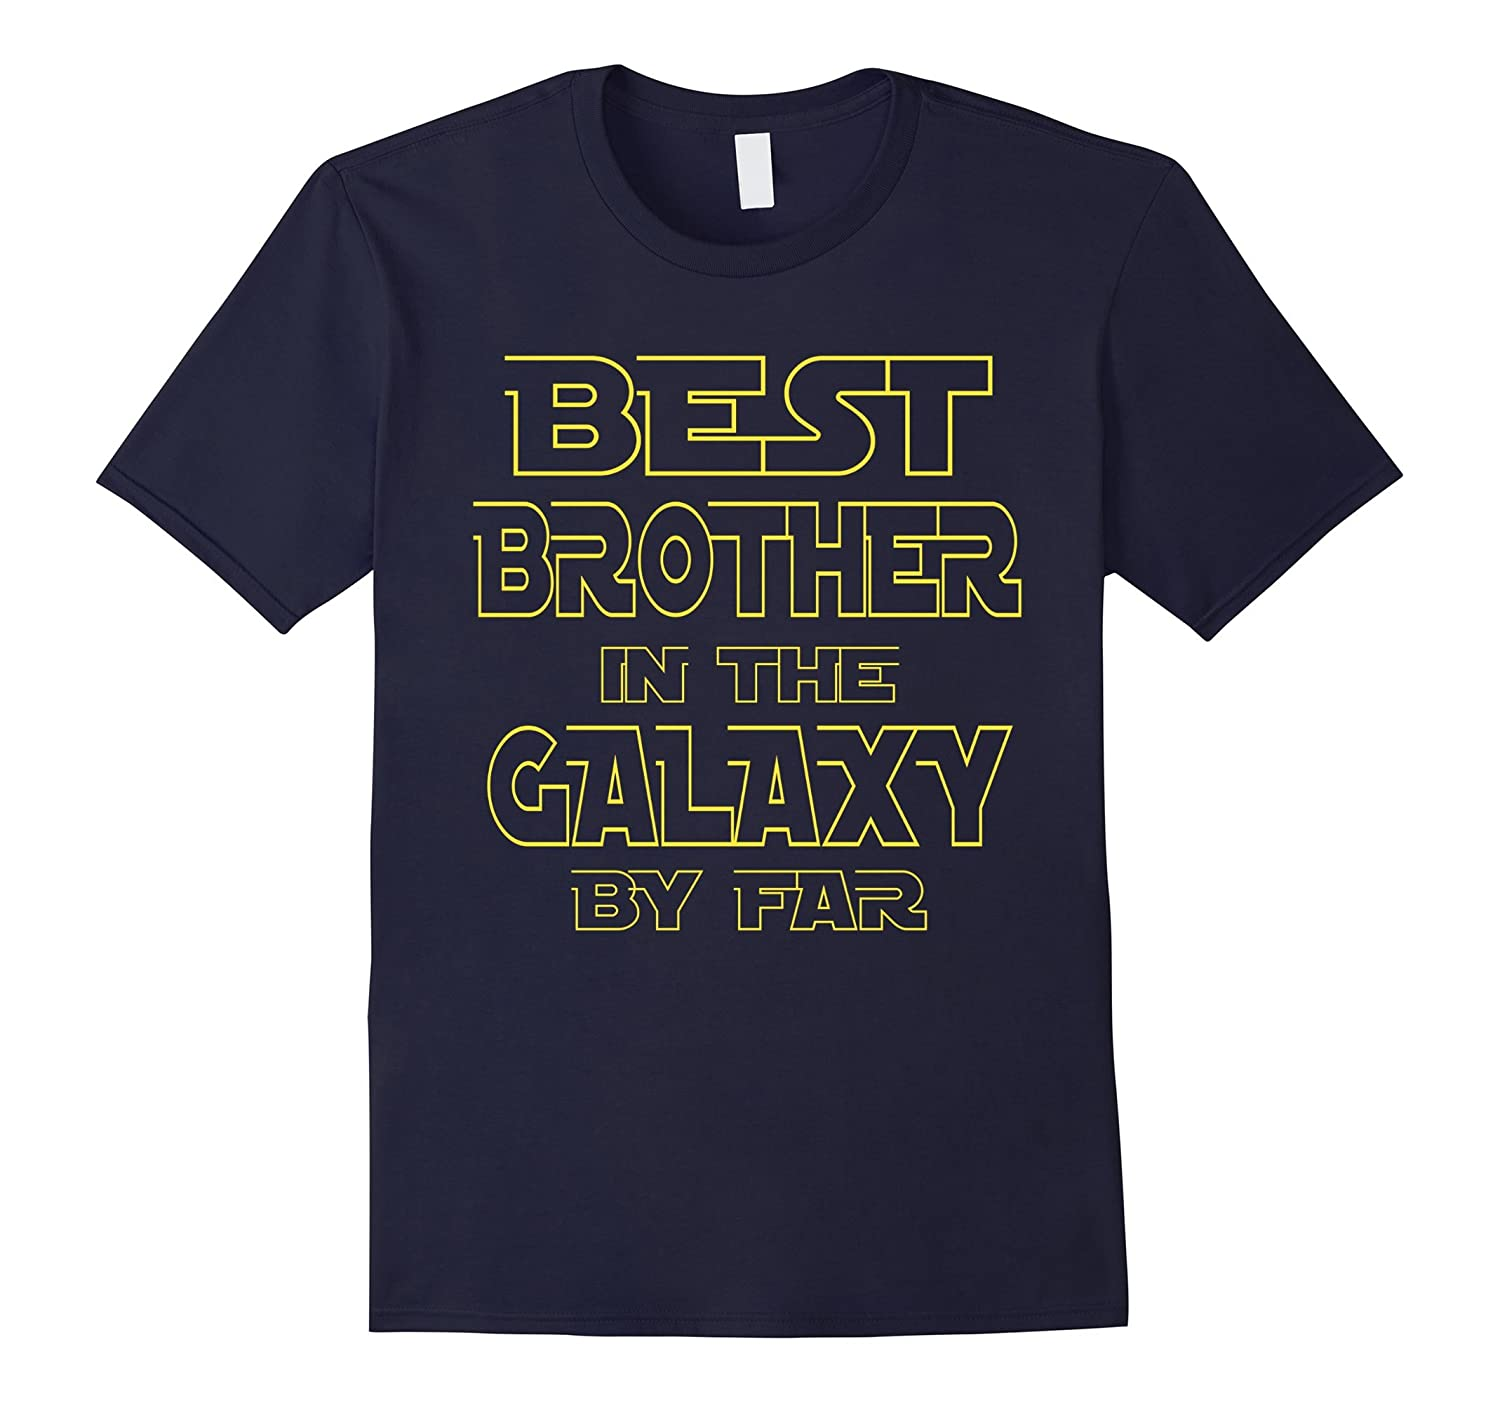 BEST BROTHER IN THE GALAXY COOL FUN BRO T-SHIRT GIFT-PL